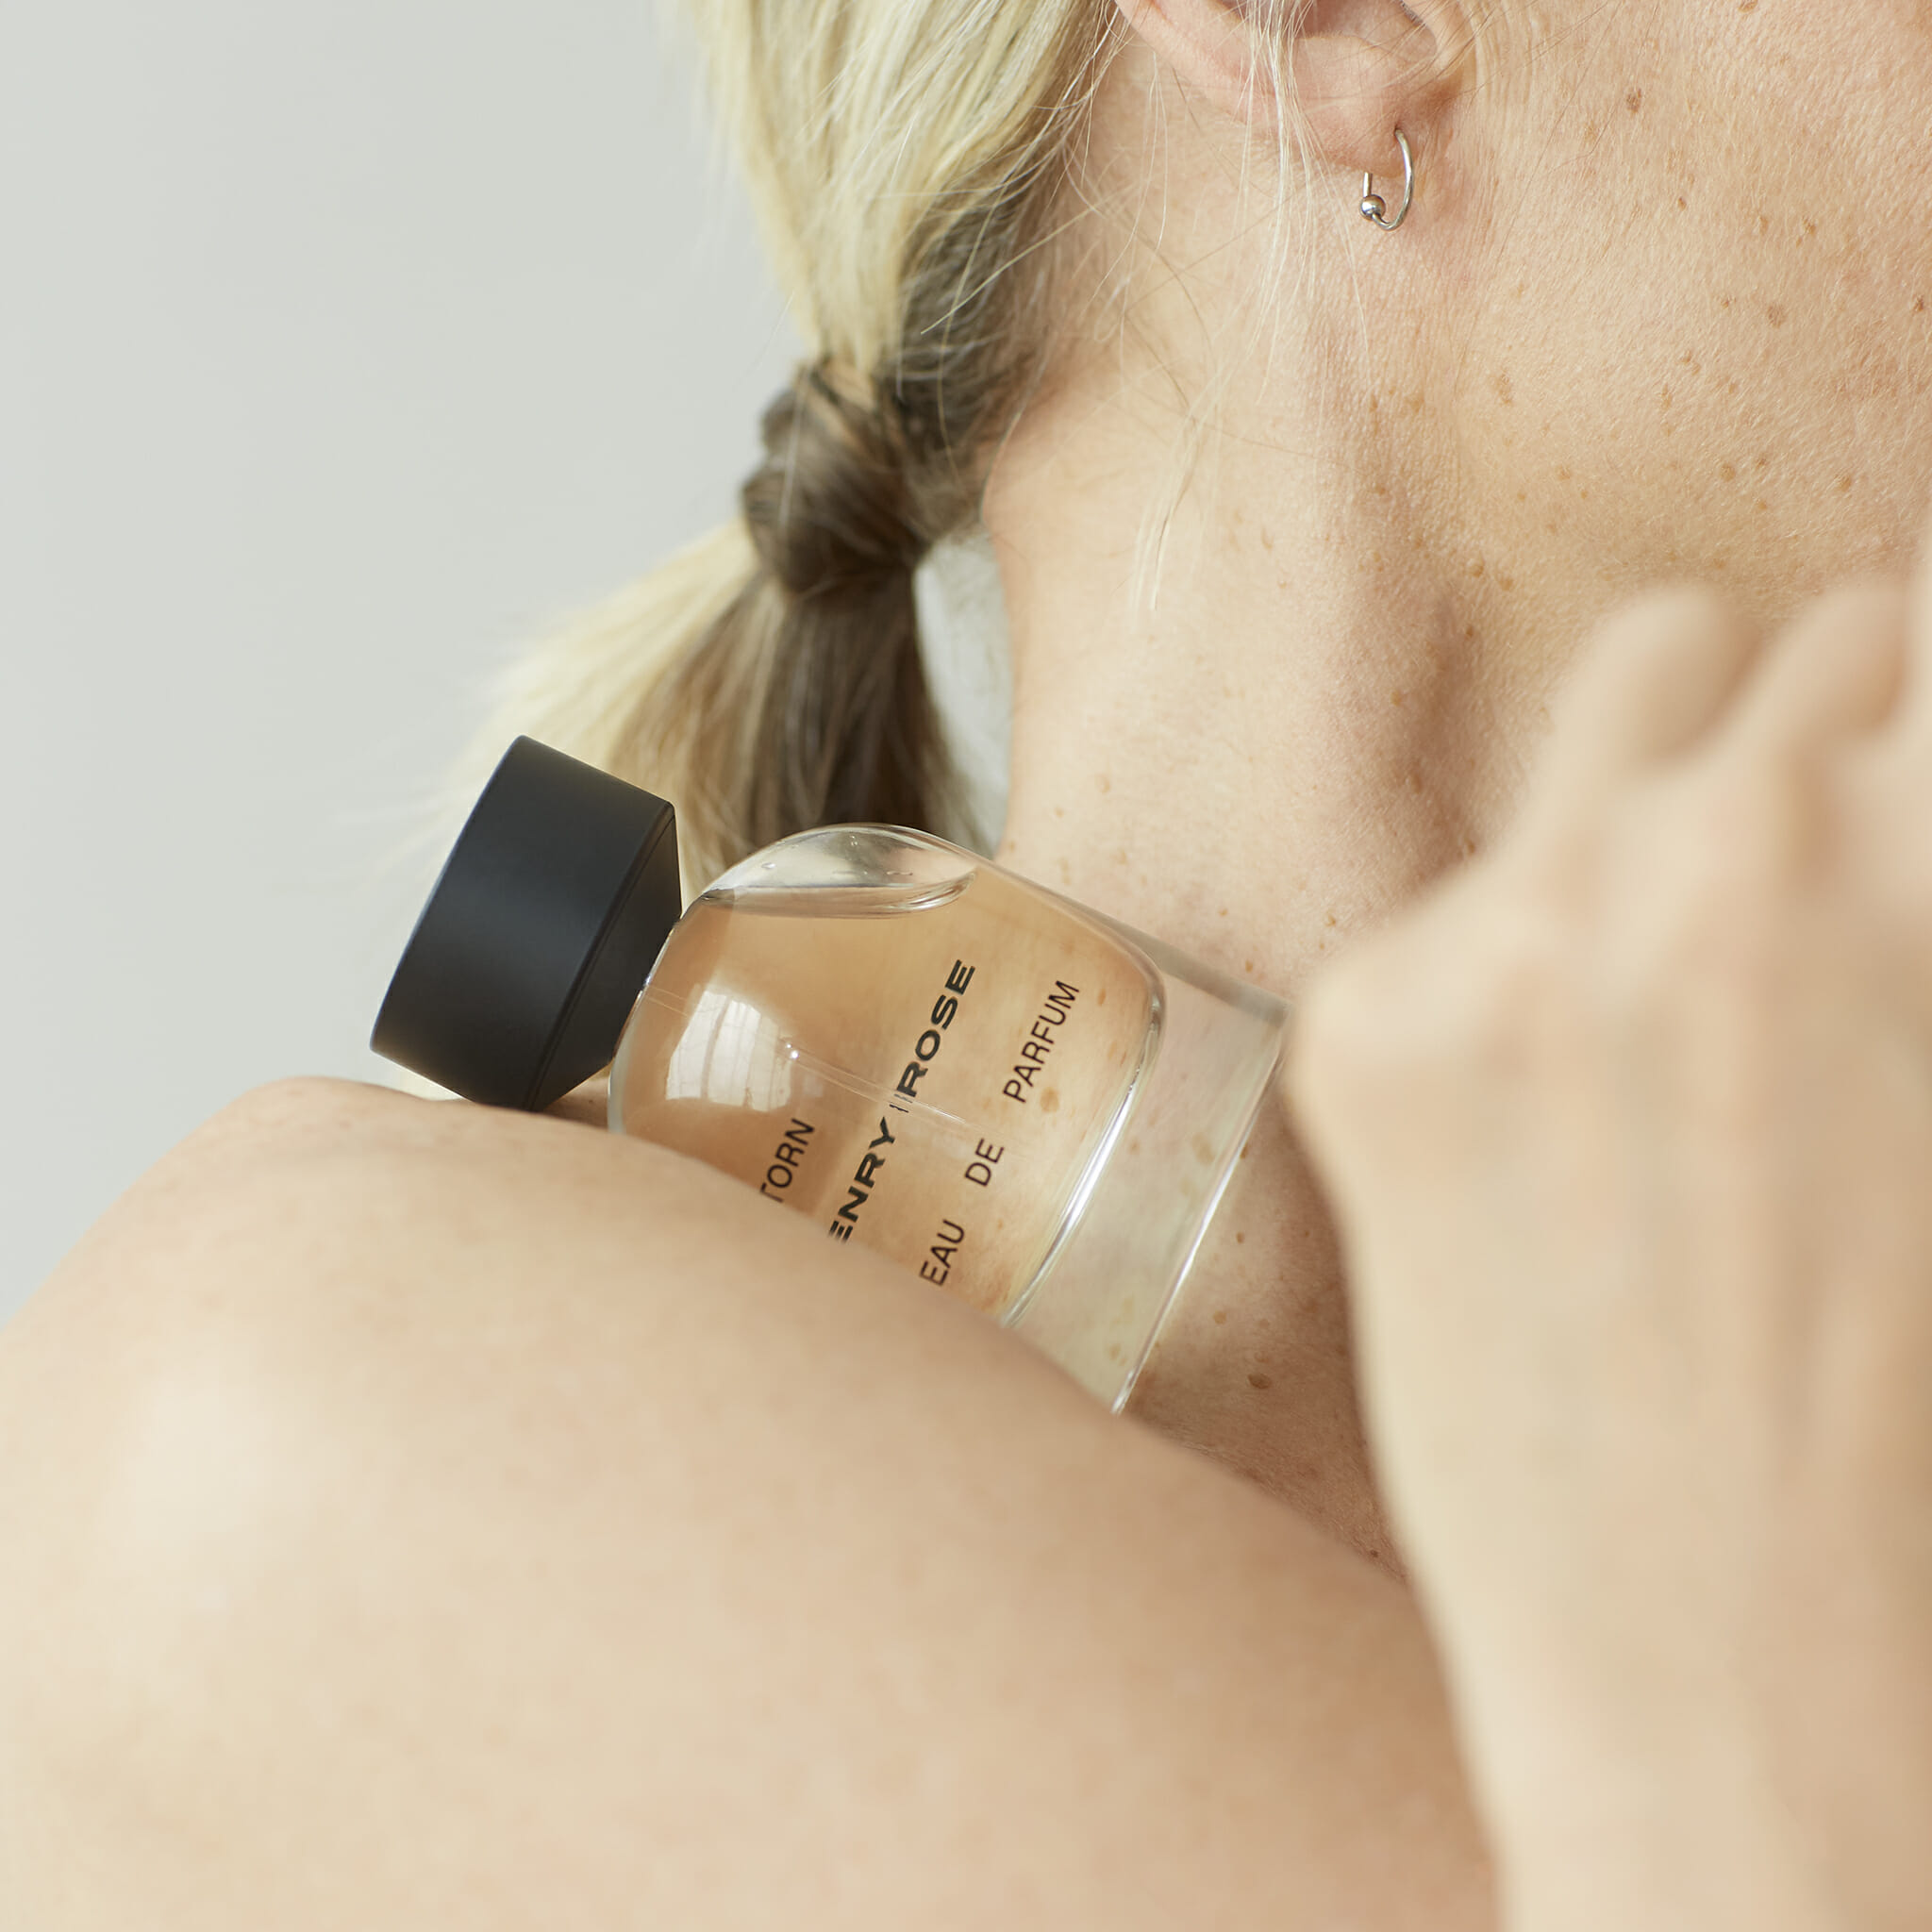 Should We All Switch to Natural Perfume? | Man Repeller